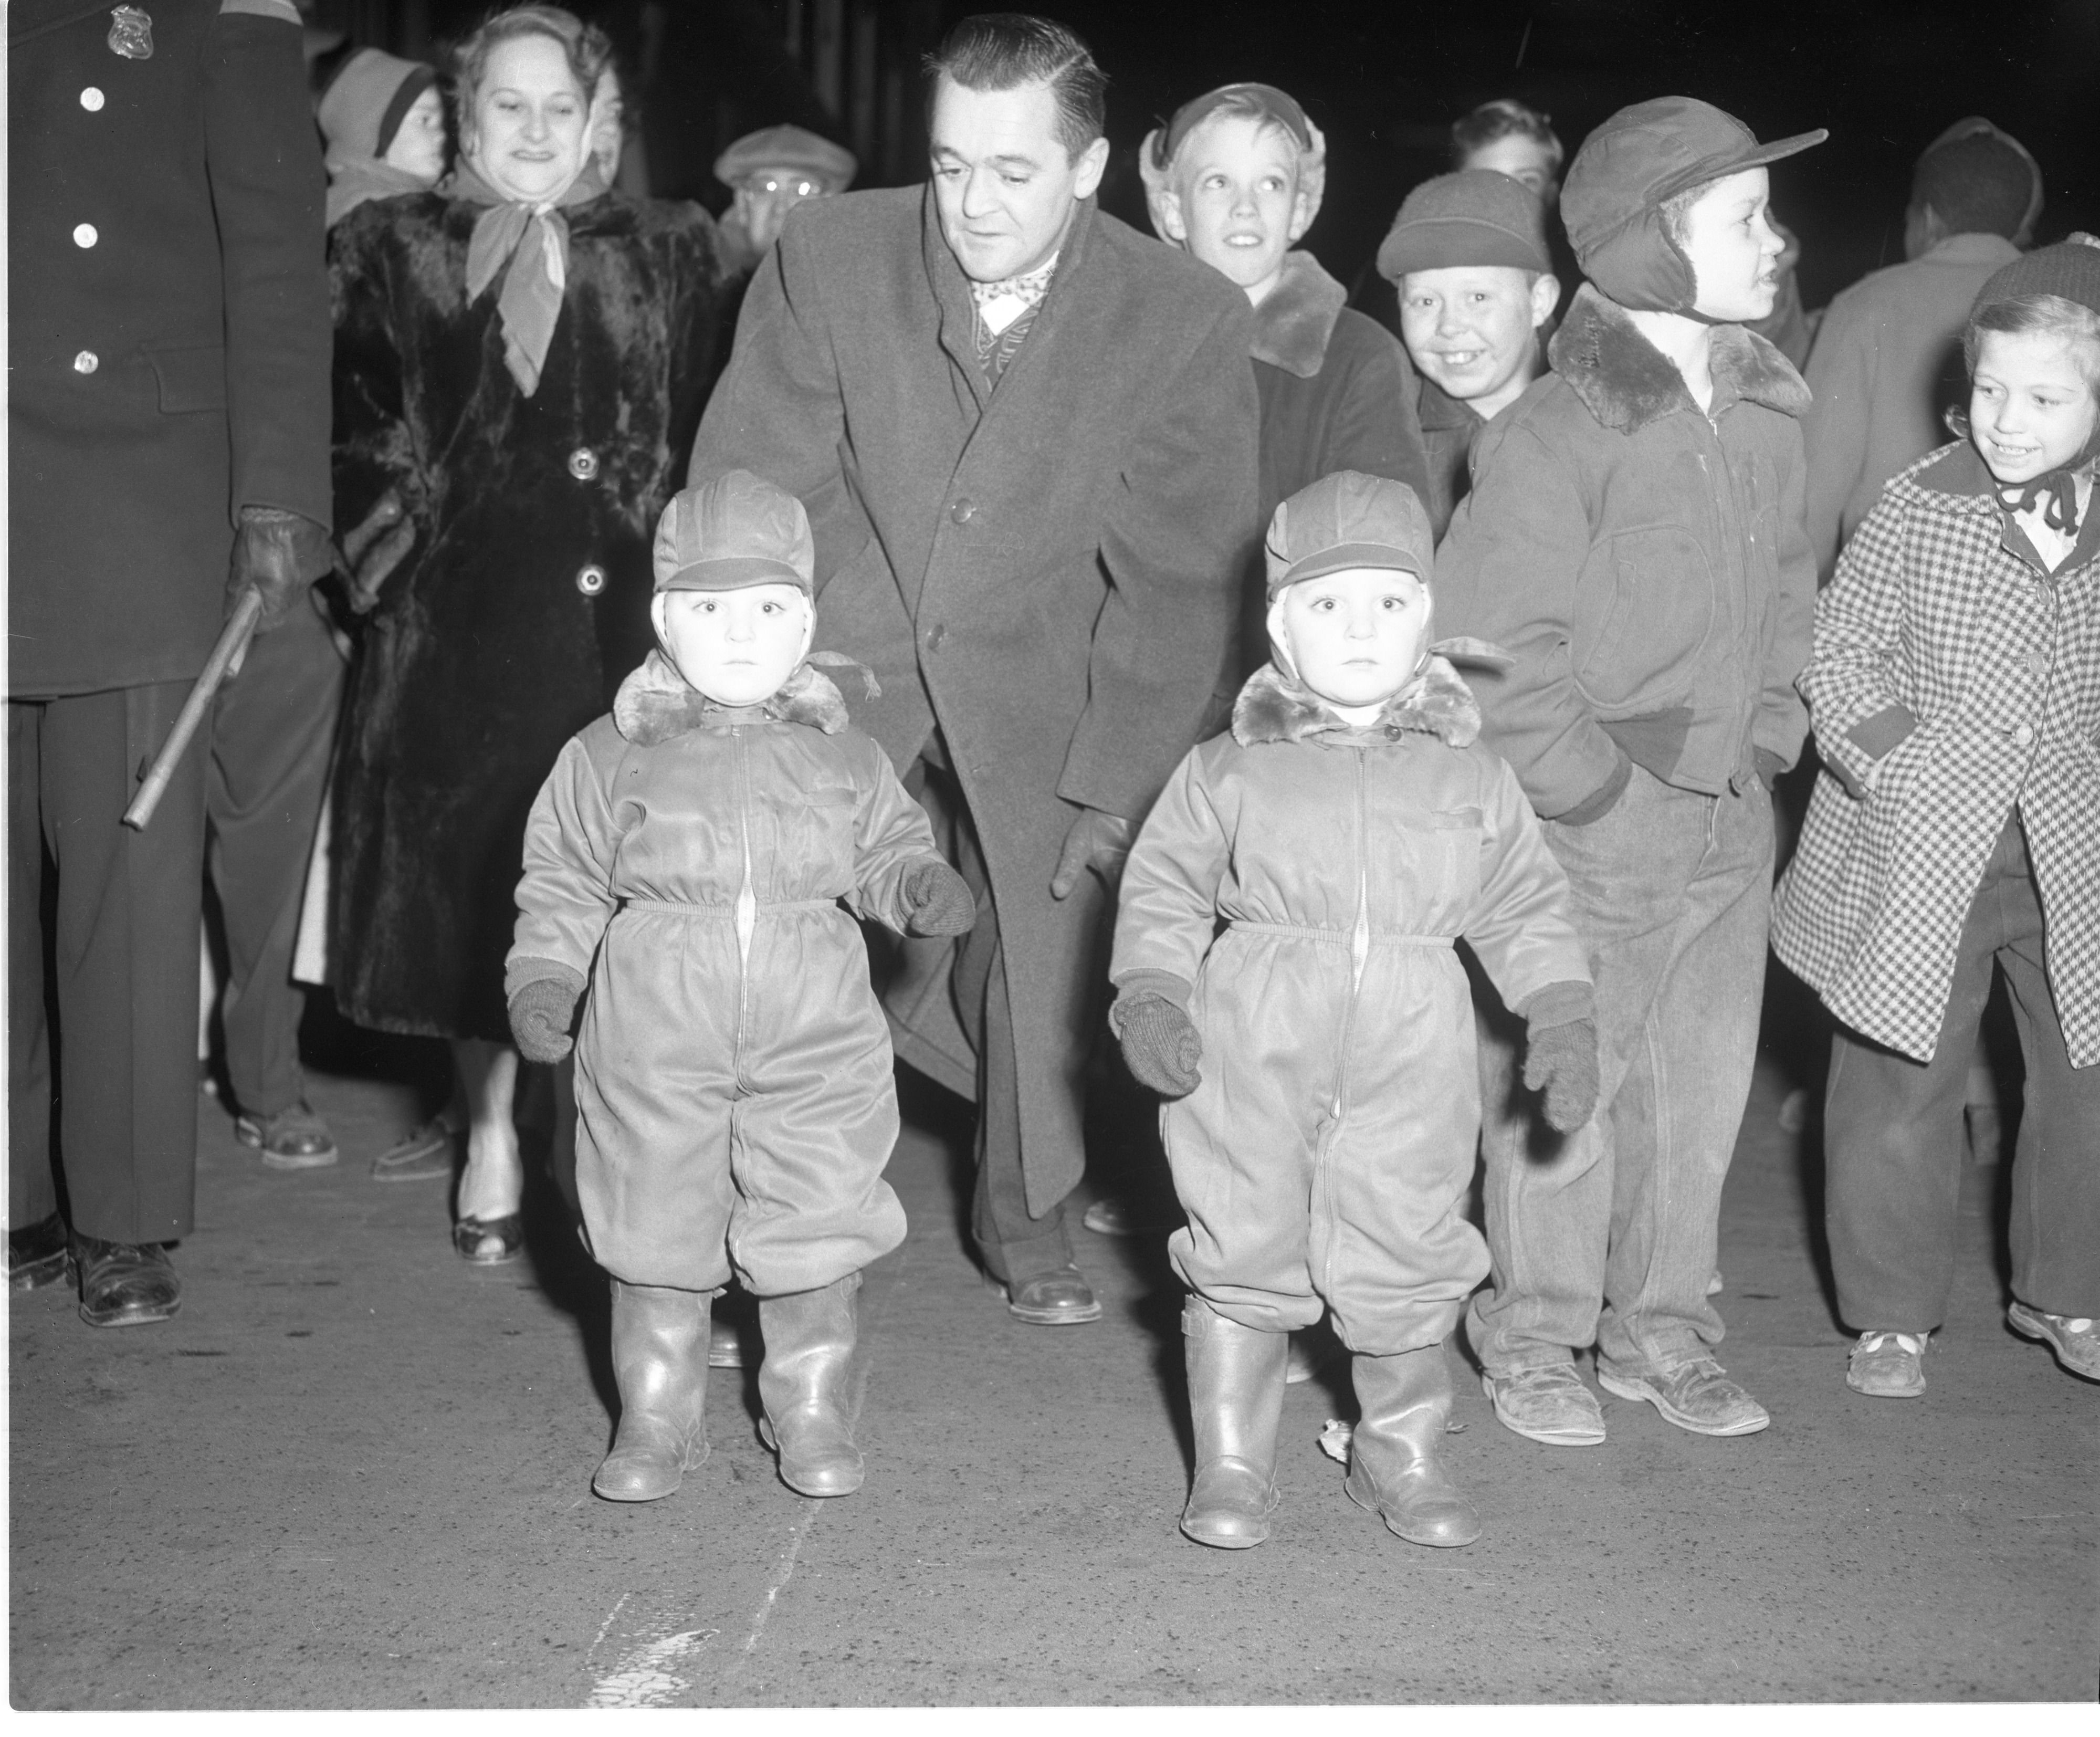 Children Along The Ypsilanti Christmas Parade Route, December 1954 image